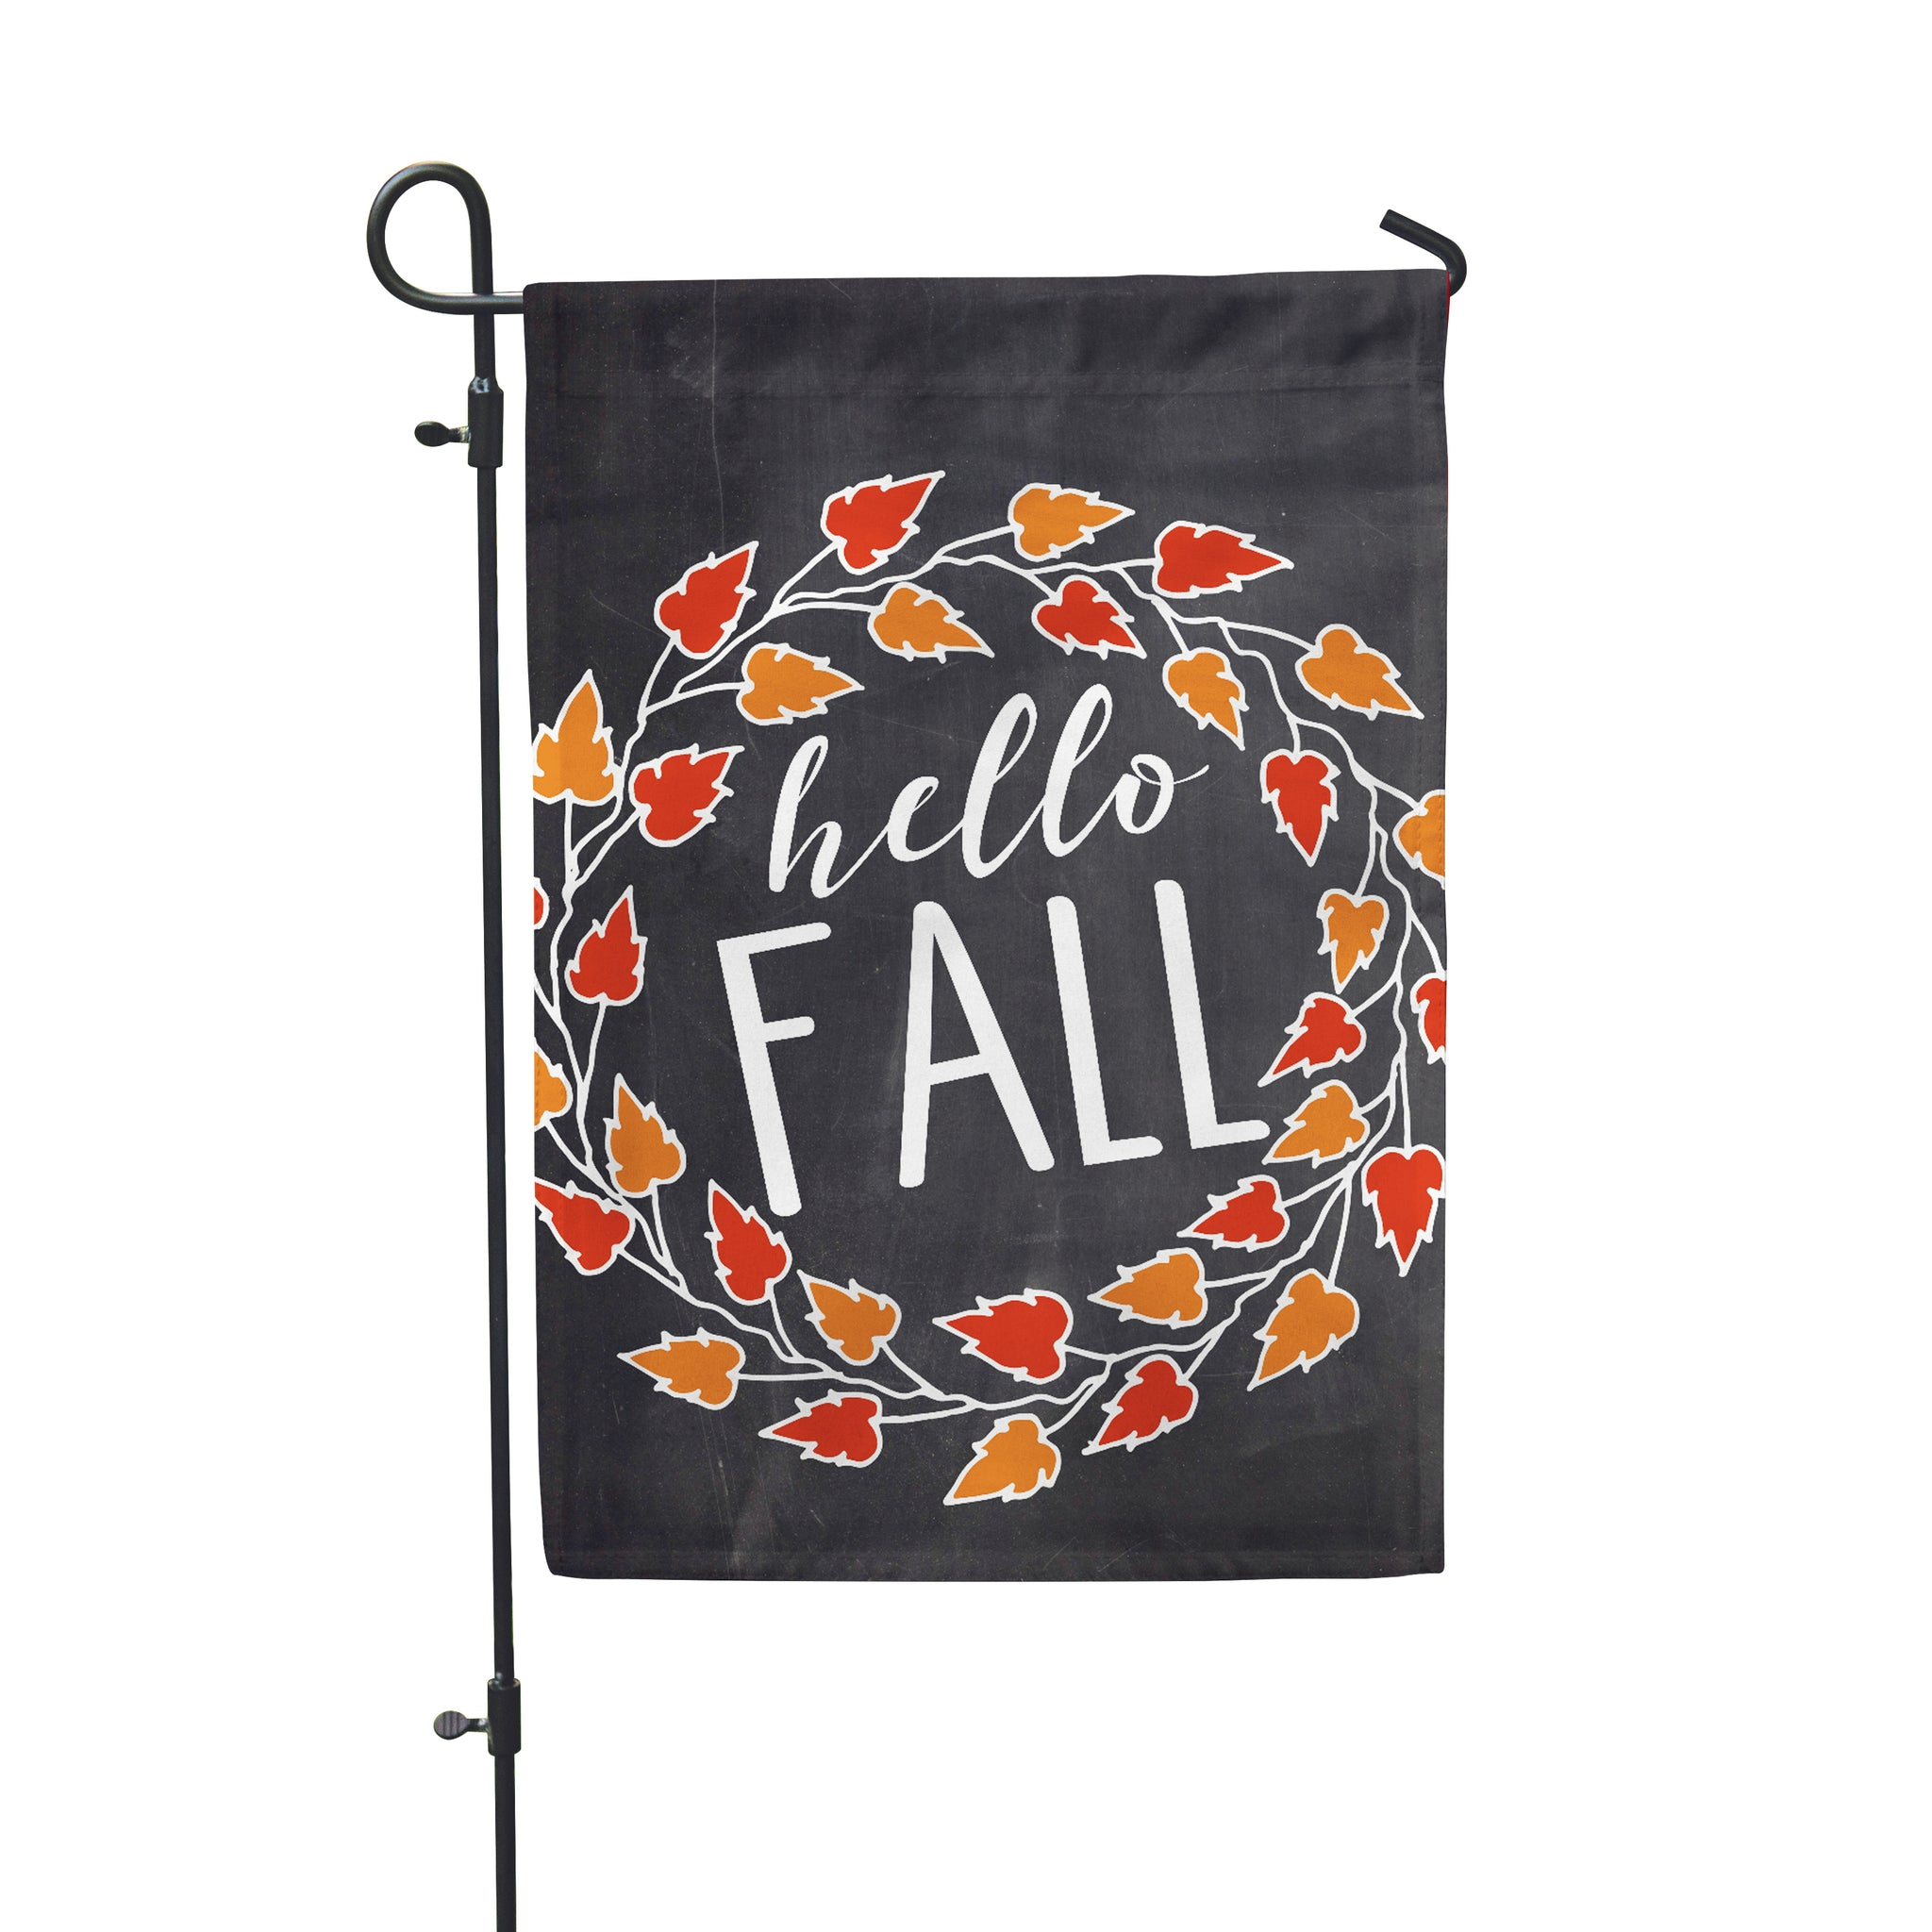 "Hello Fall Chlk Garden Flags 12"" x 18"" - Second East"